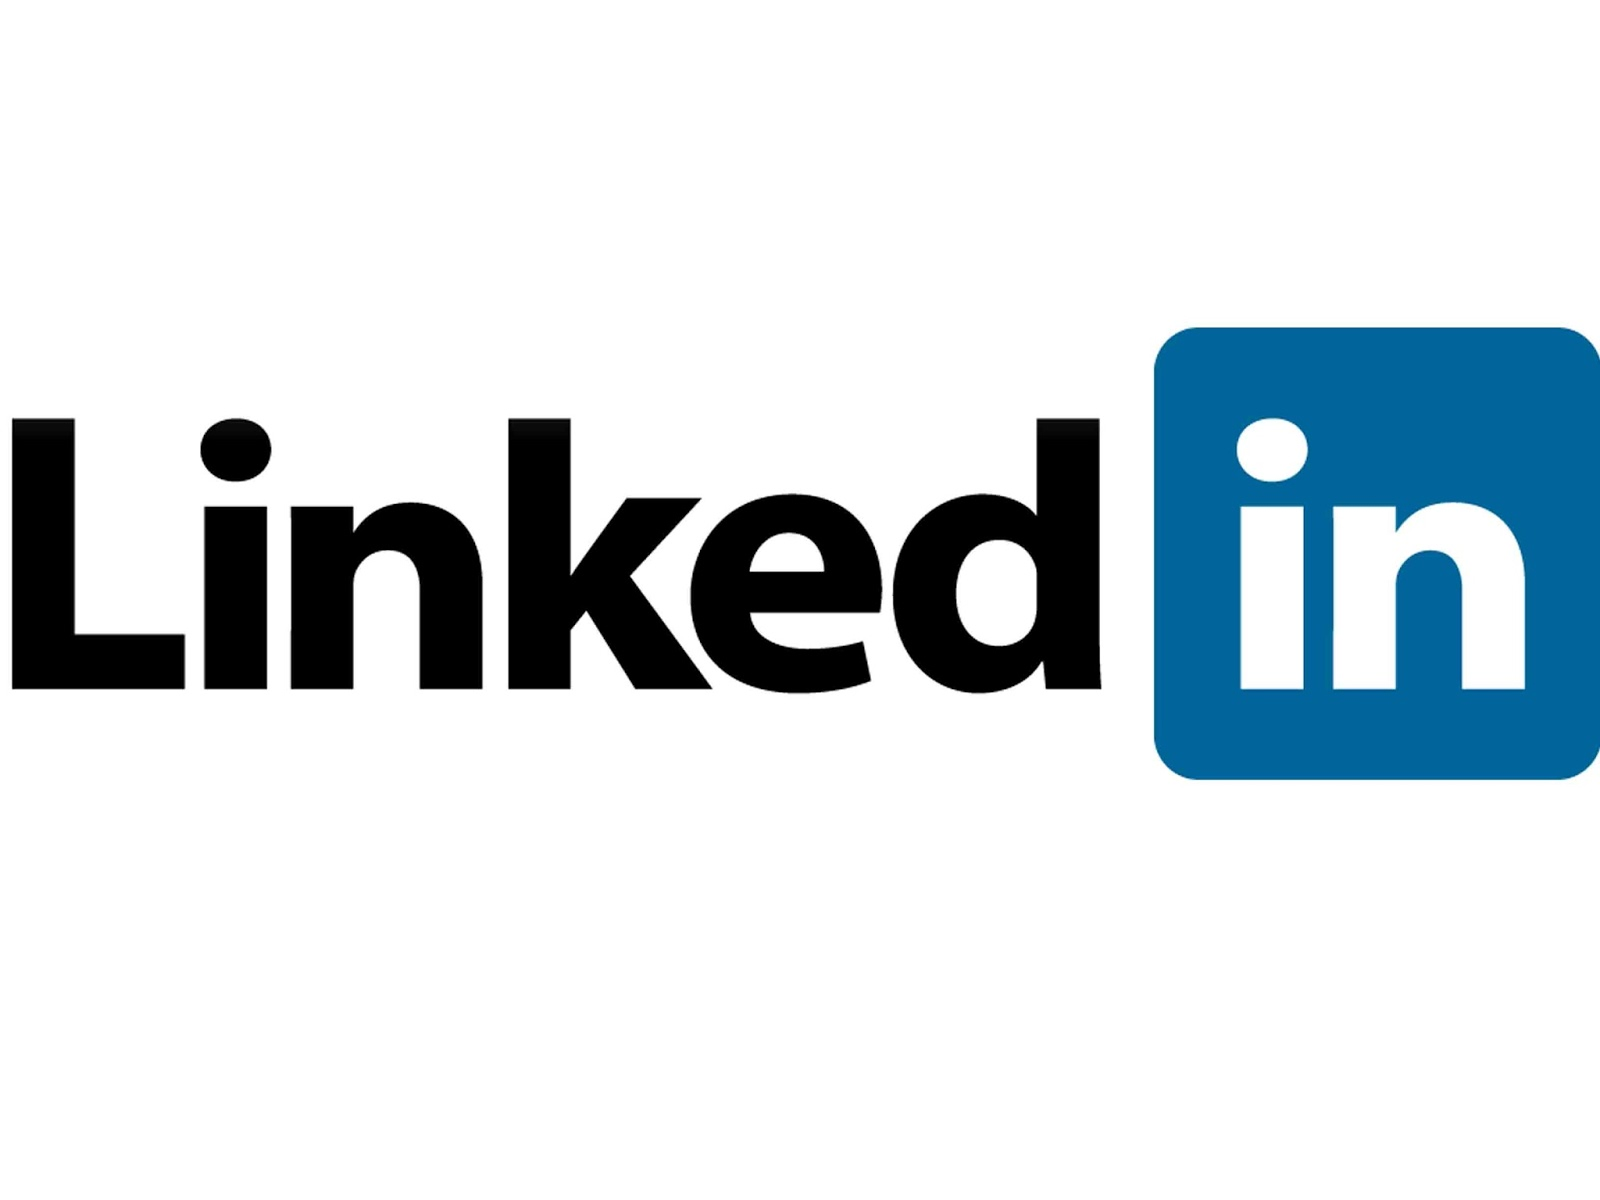 How to Stand Out on LinkedIn - 3 Top Secret Tips